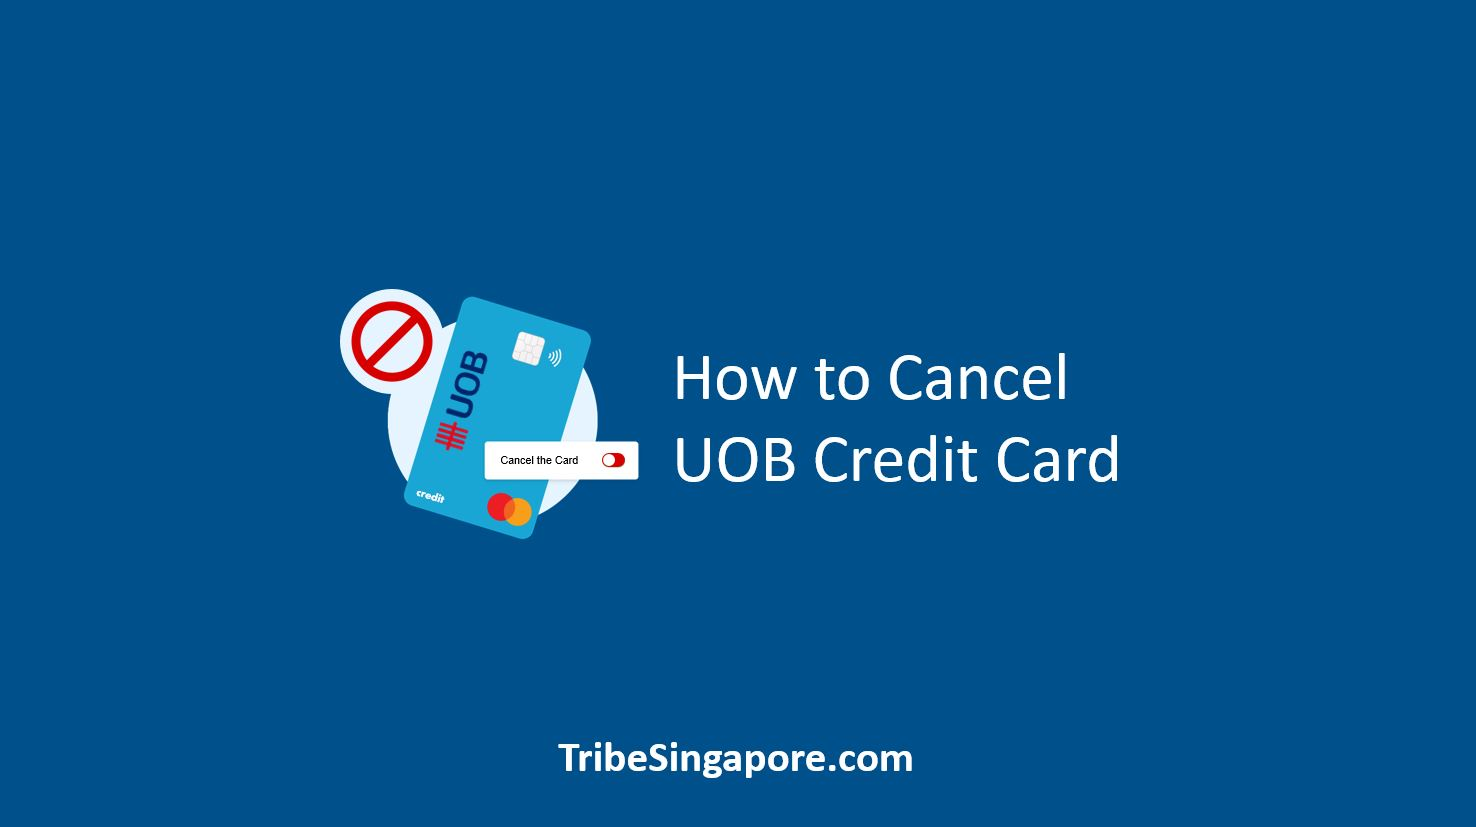 How to Cancel UOB Credit Card